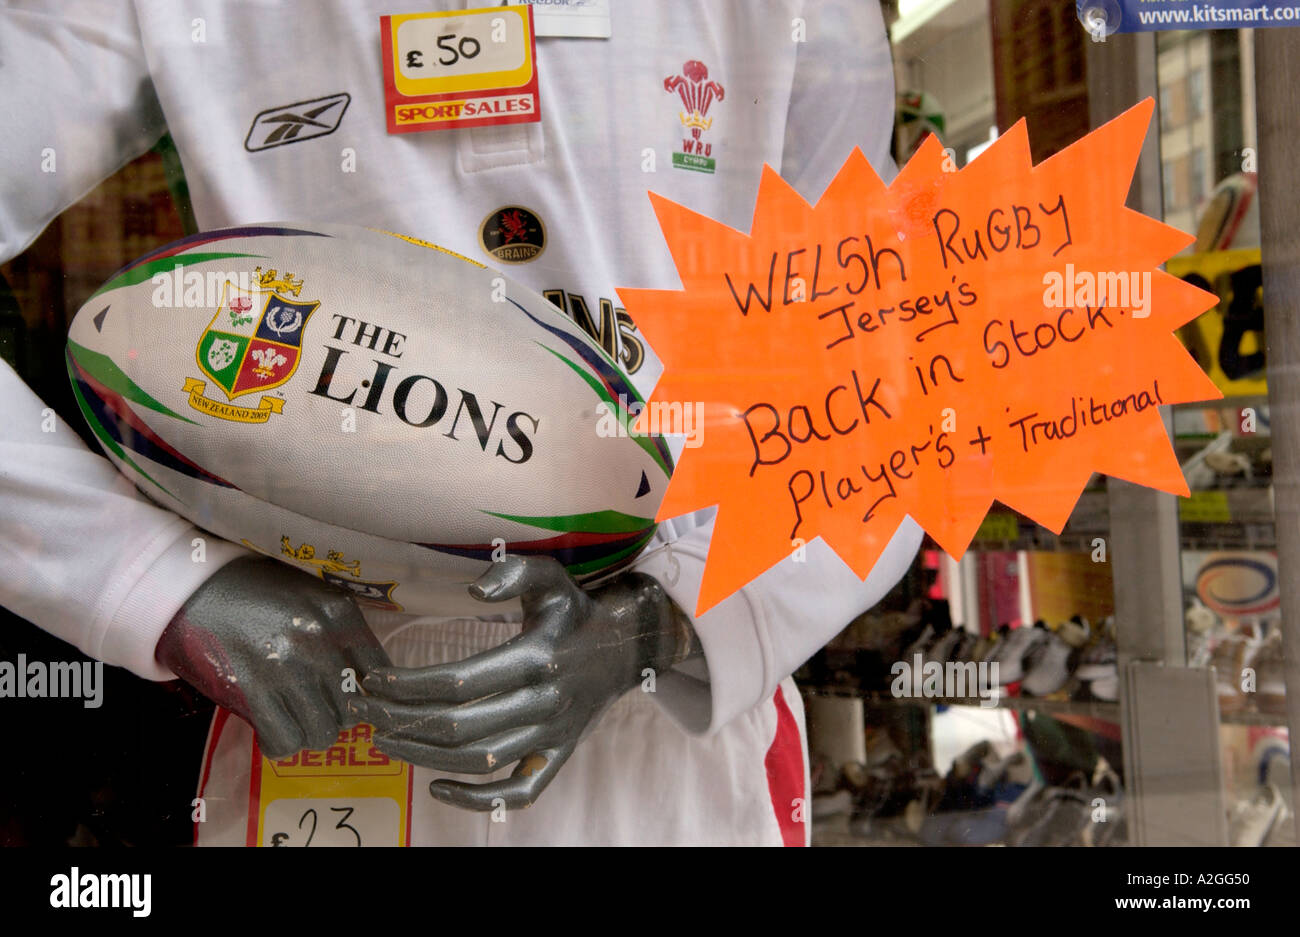 Rugby display in sports shop window in Cardiff city centre South Wales UK - Stock Image